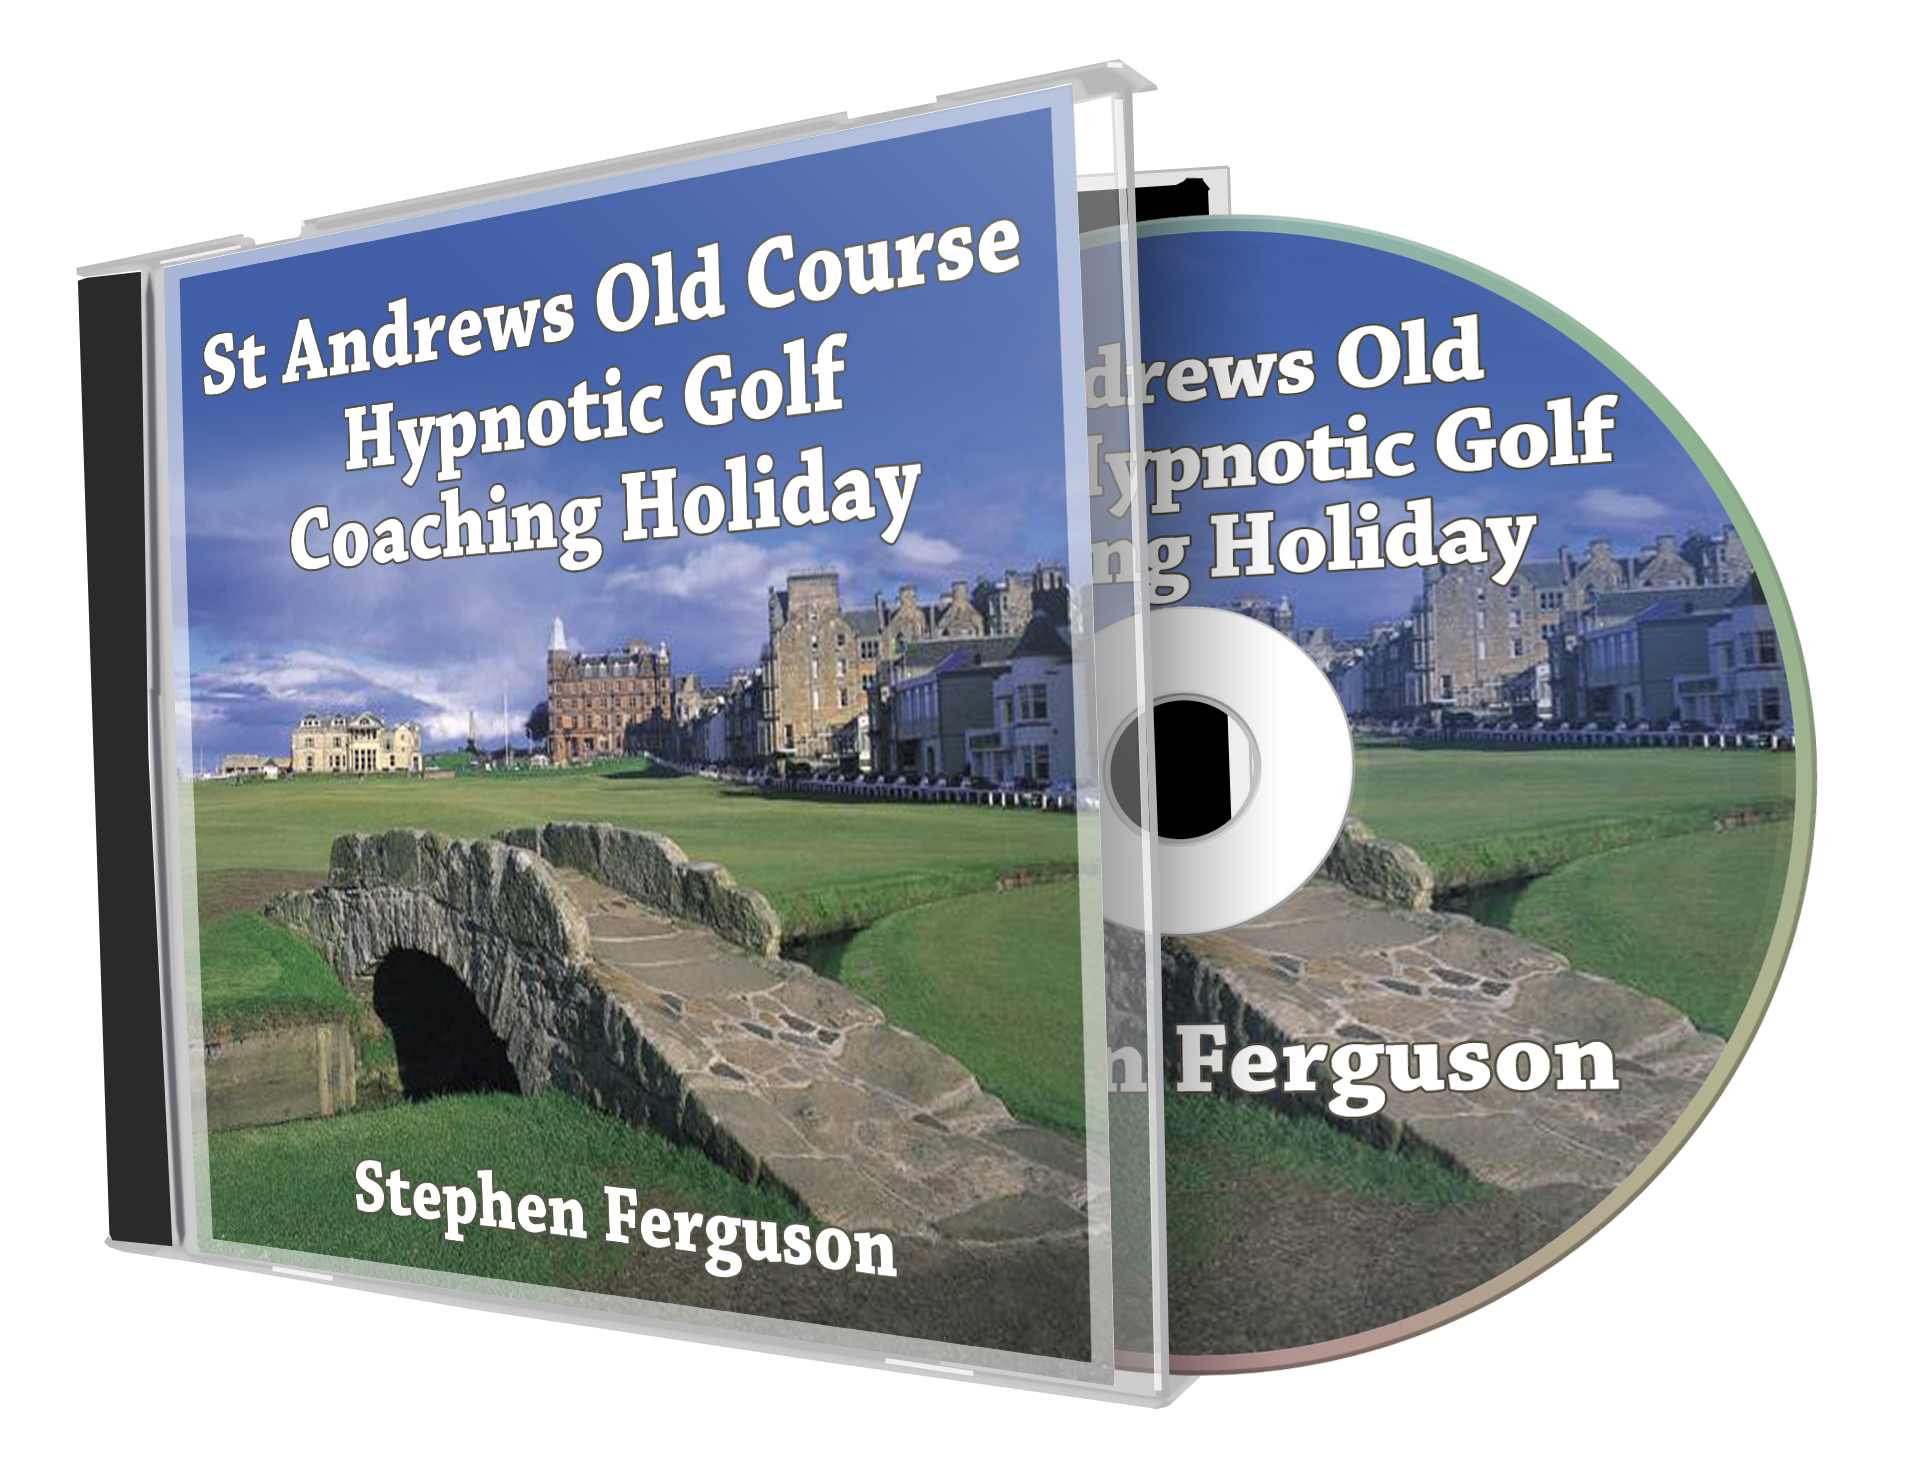 The Old Course Hypnotic Golf Holiday